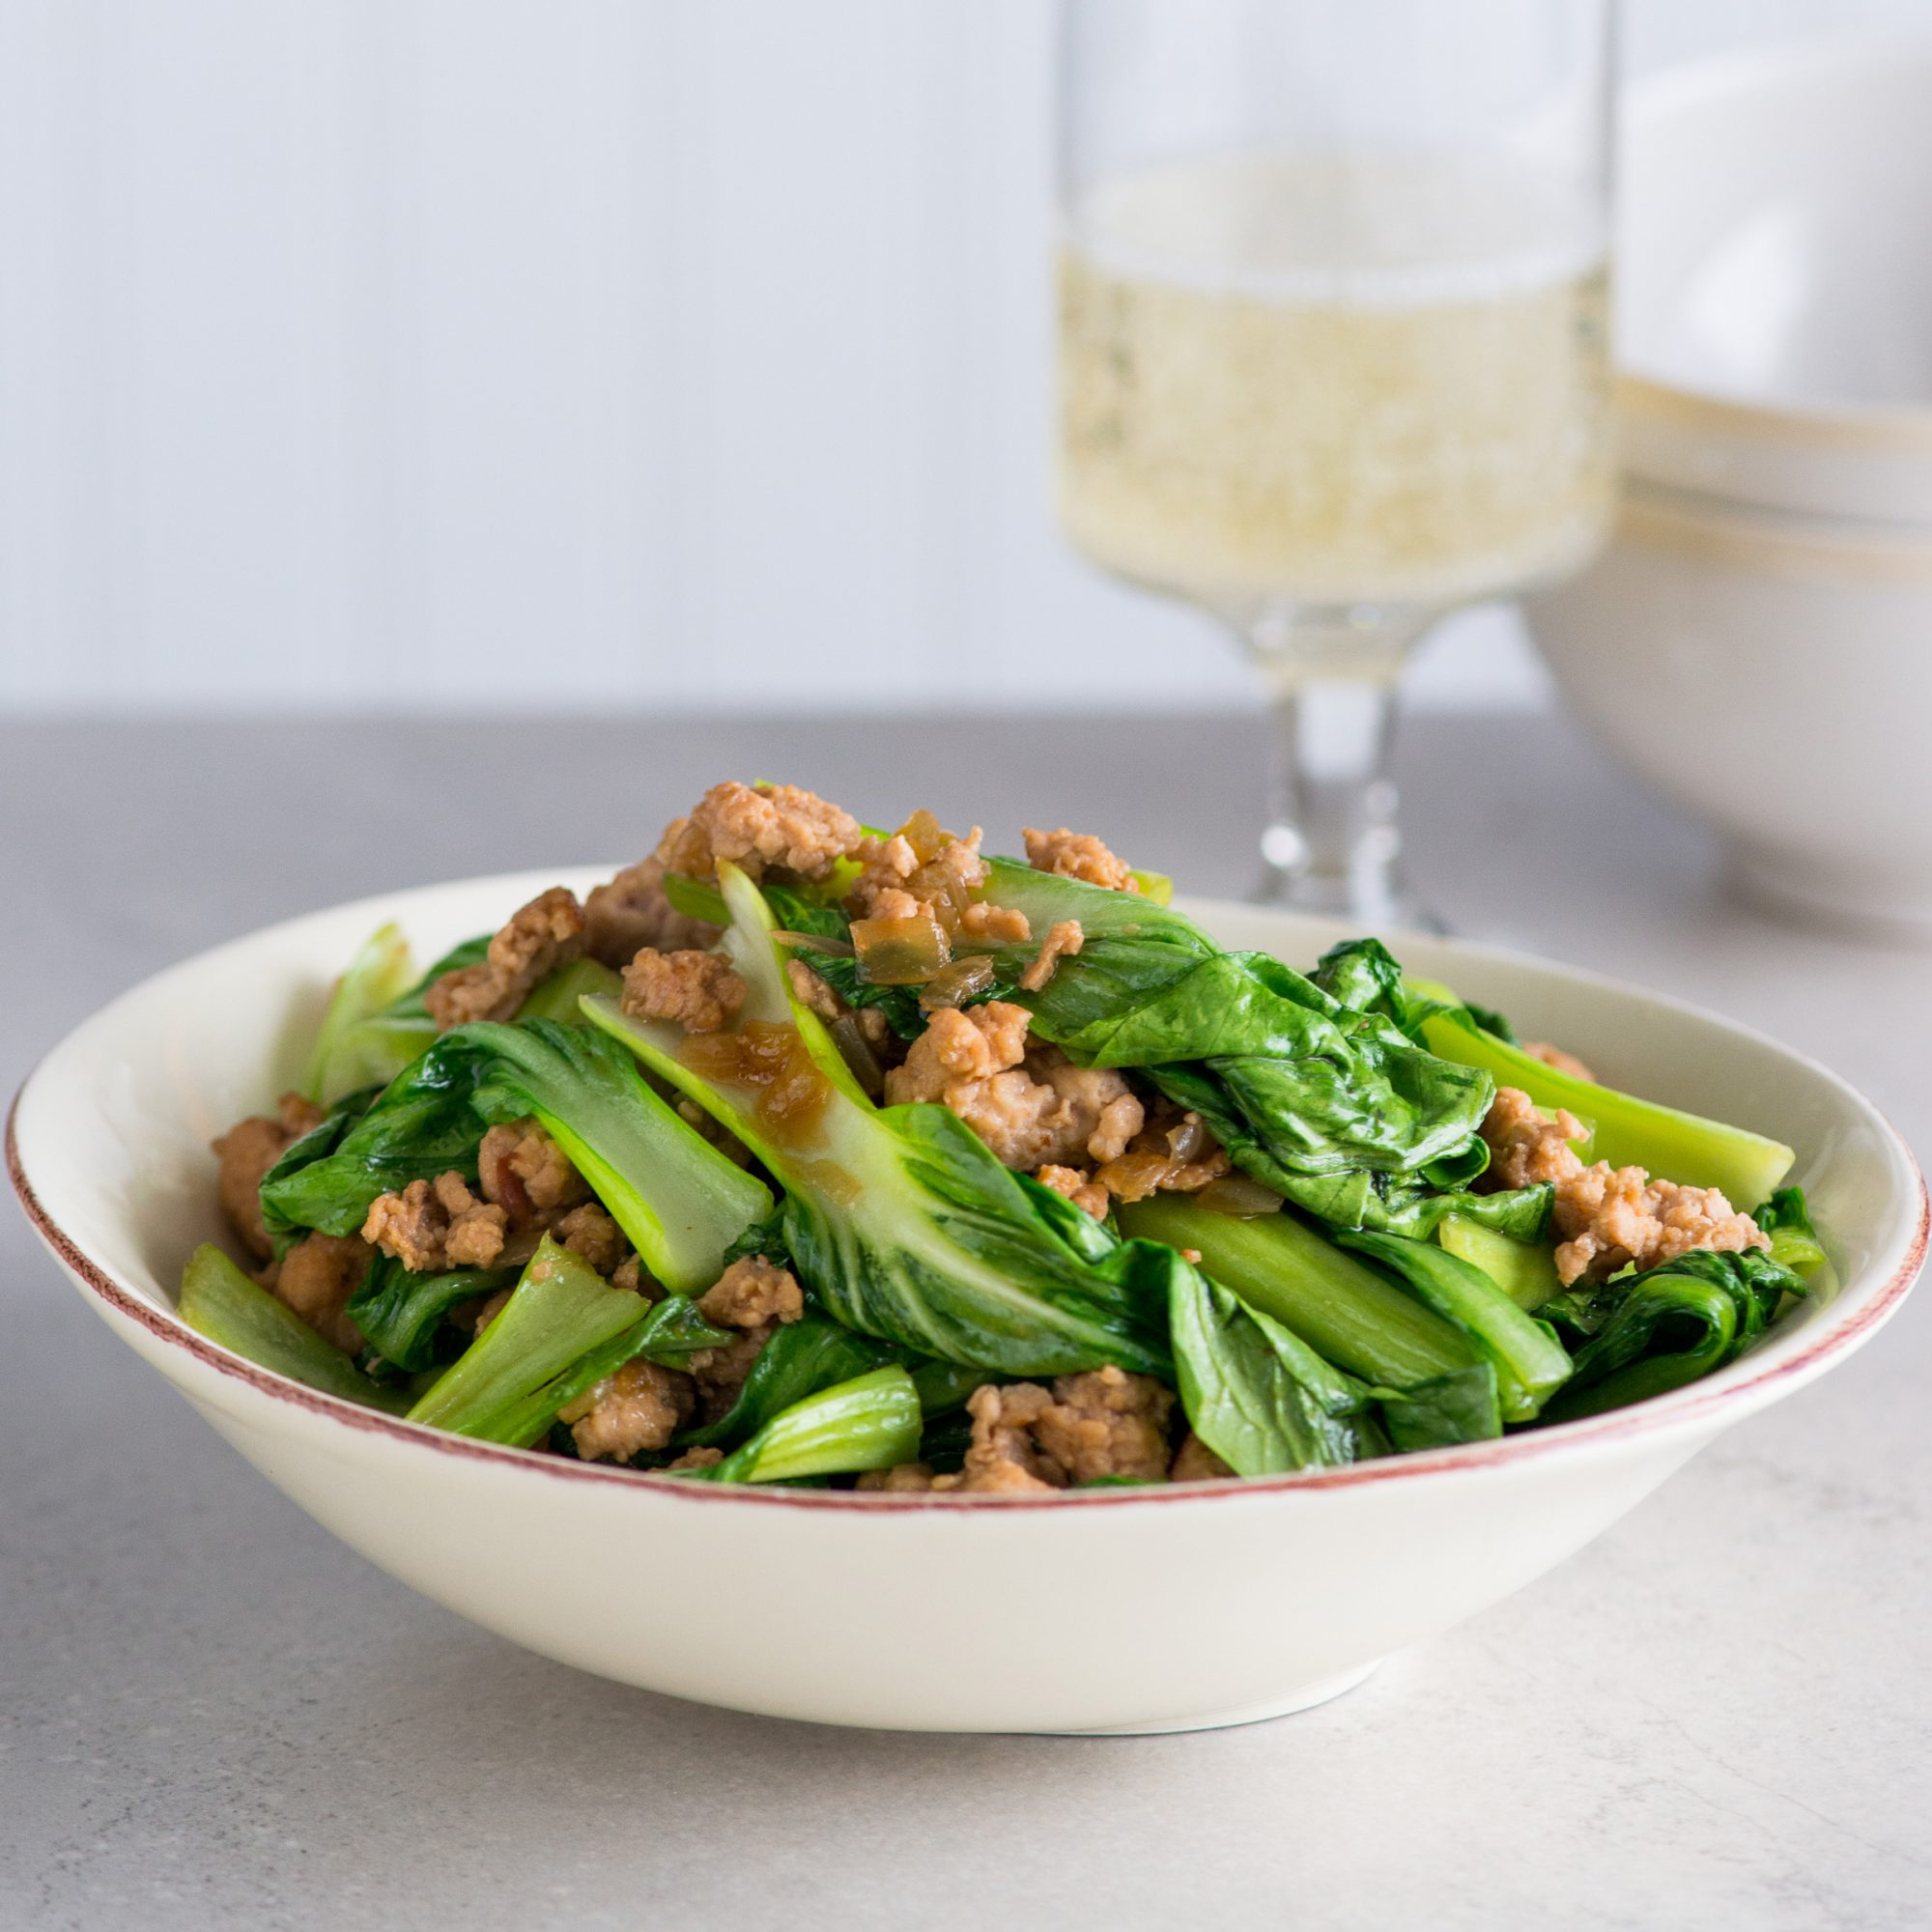 original-201310-r-teriyaki-chicken-bok-choy-stir-fry.jpg